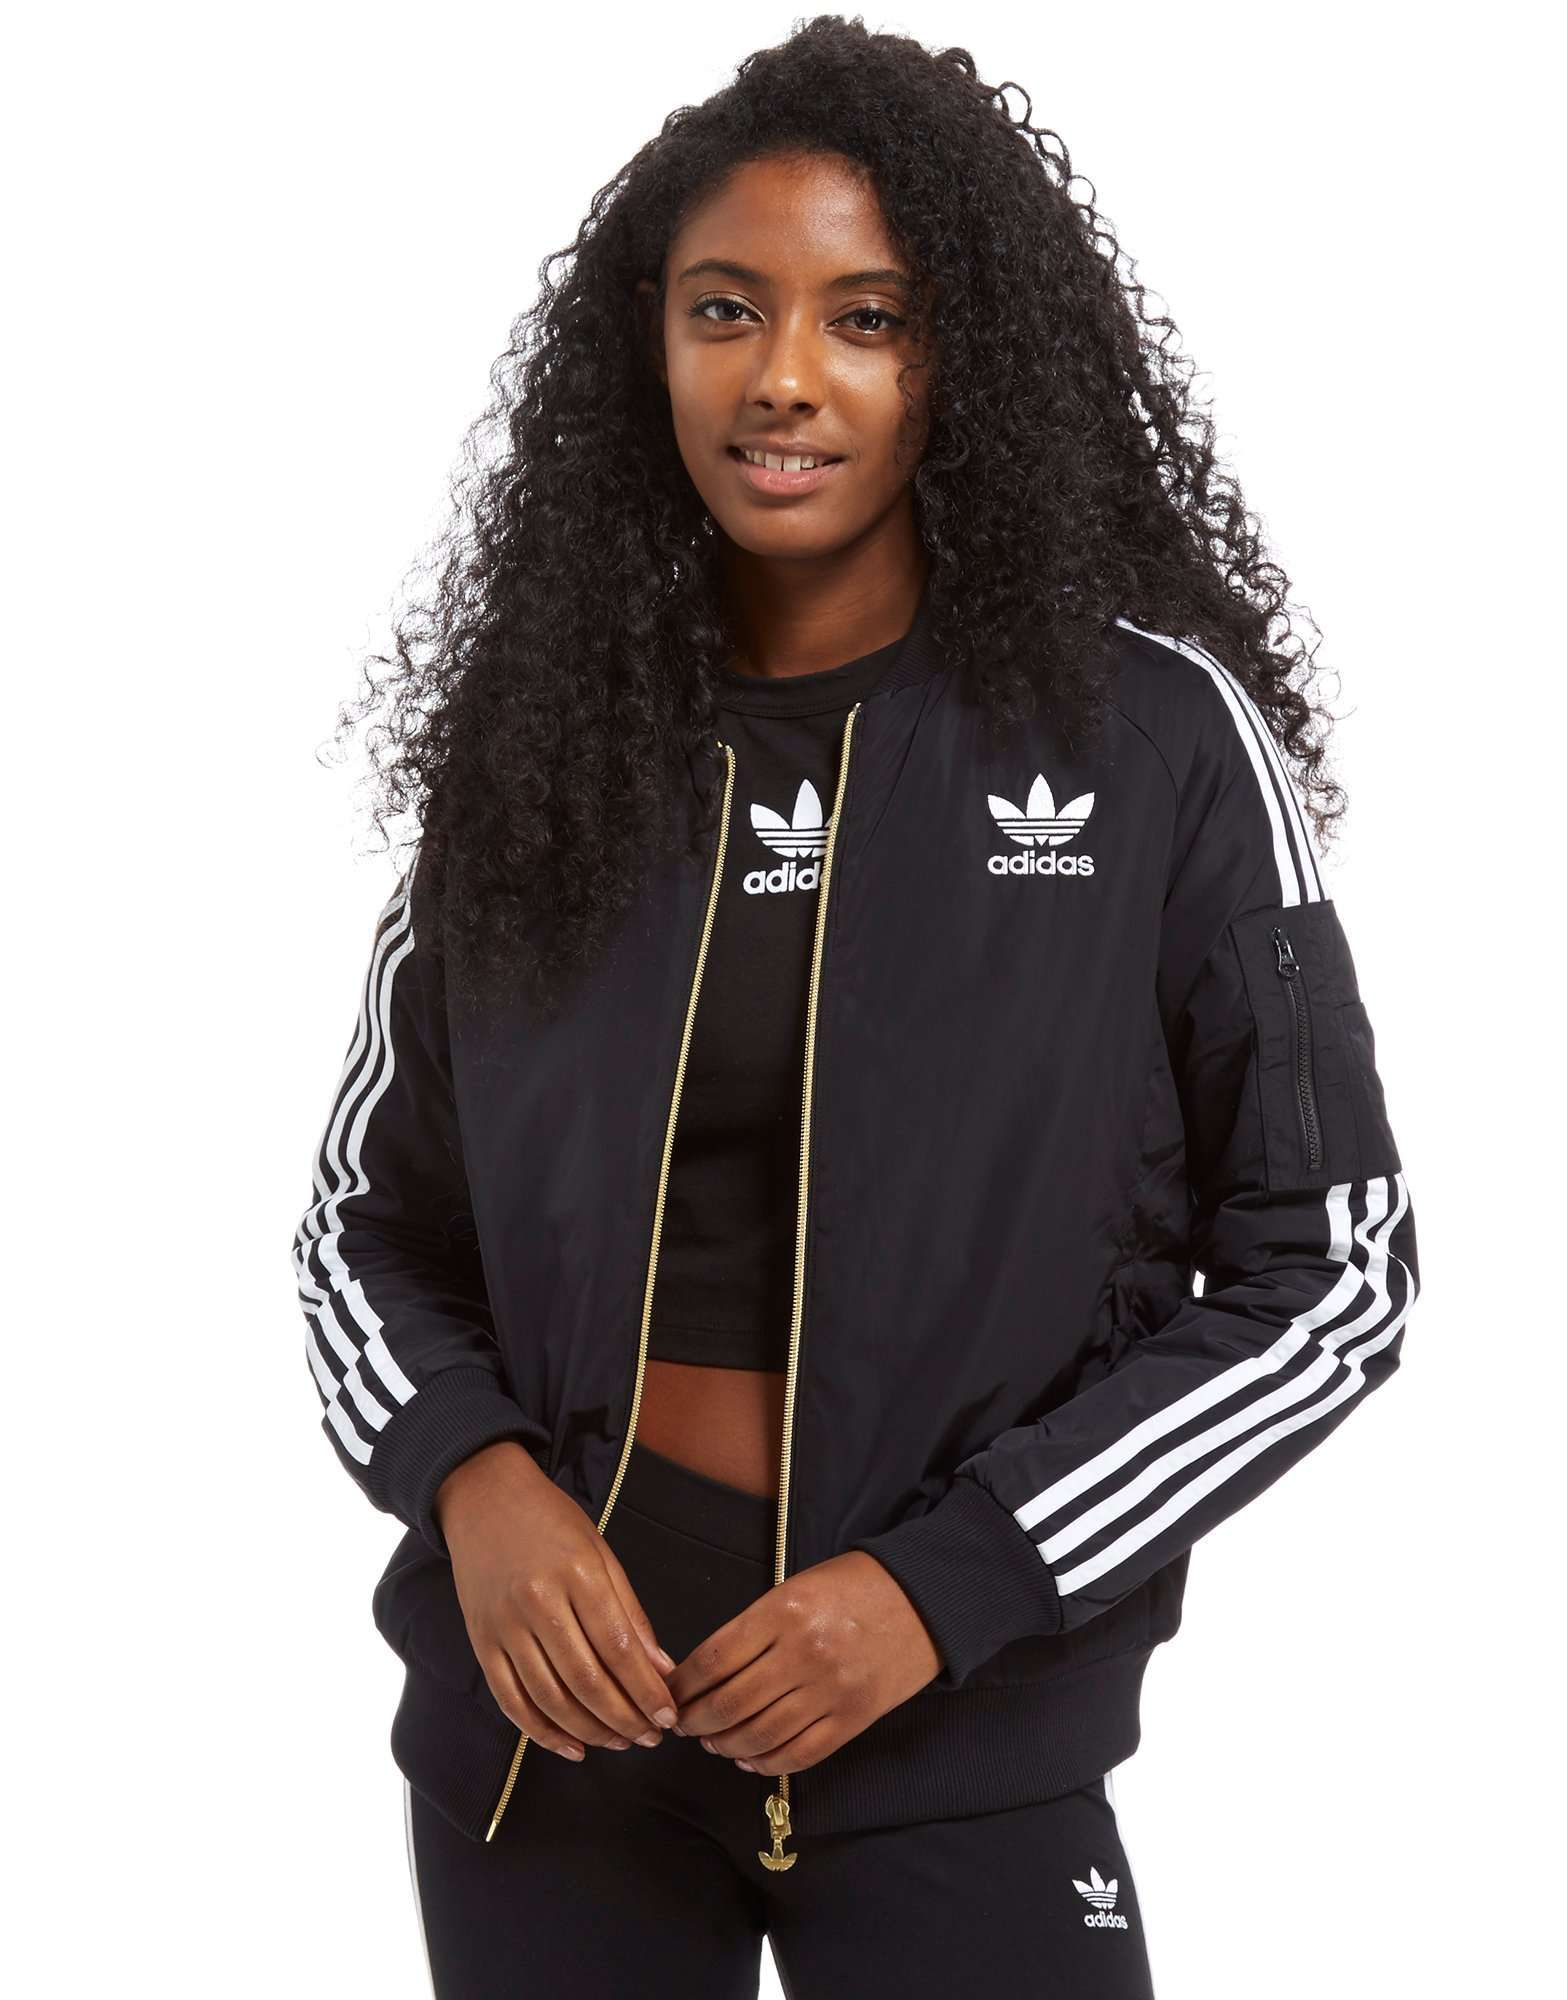 Adidas Originals Superstar chaqueta tienda para Adidas Originals